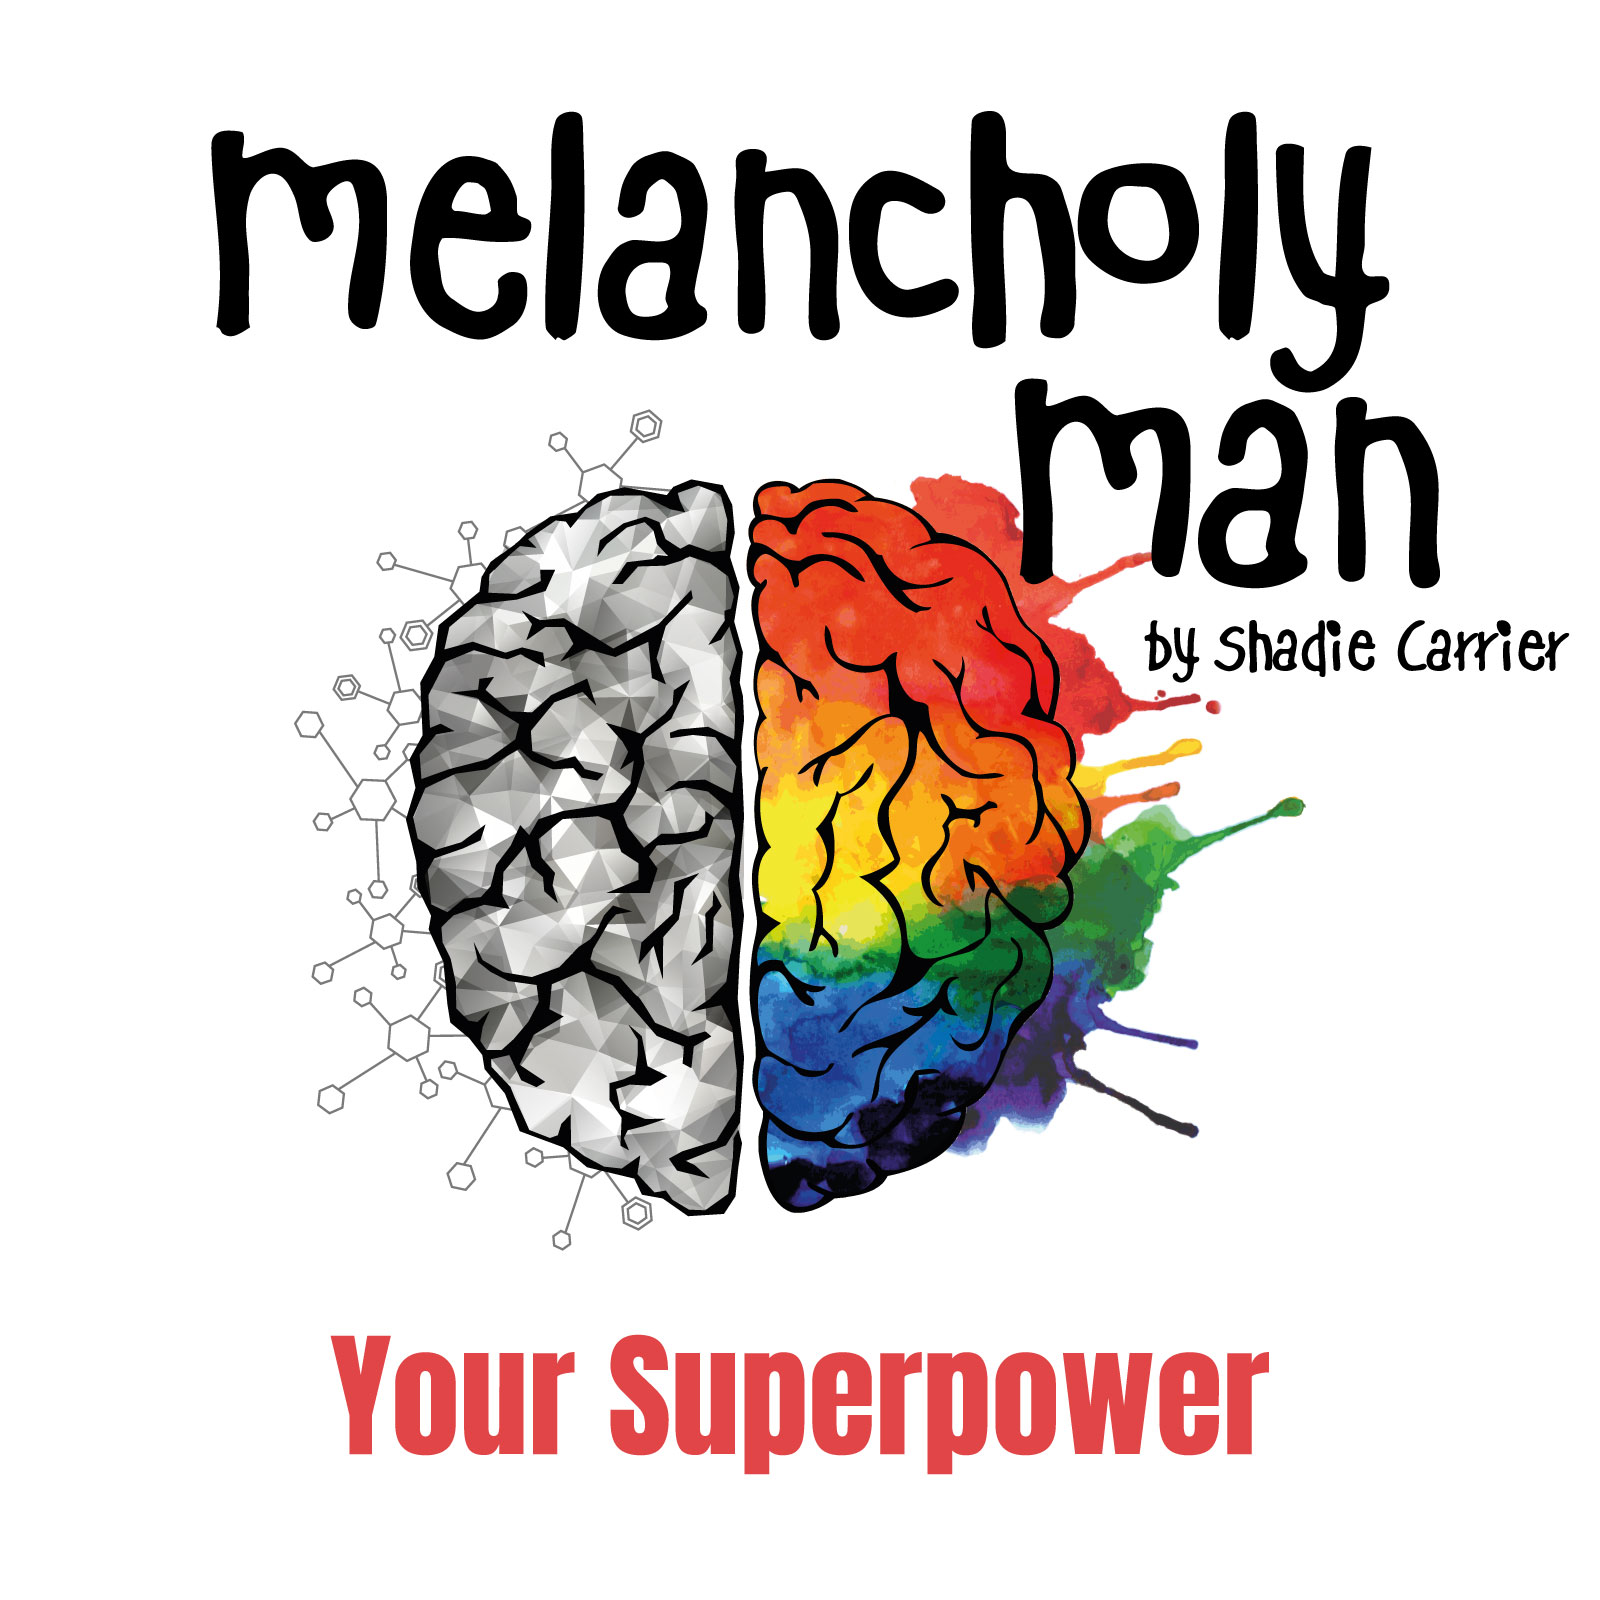 Melancholy Man #4 - Your Superpower